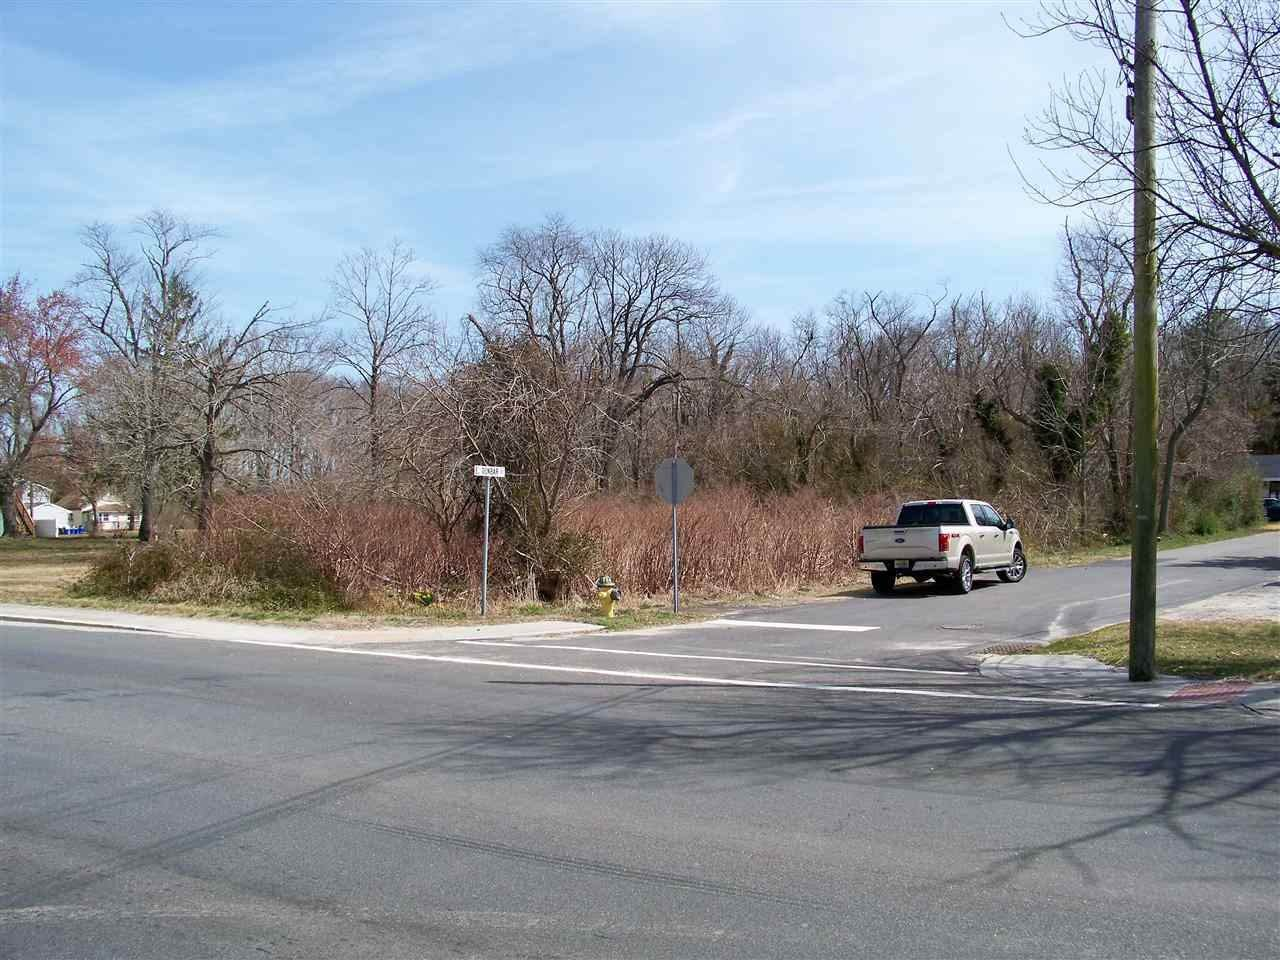 Land for Sale at 1610 Route 9 South Whitesboro, New Jersey 08210 United States